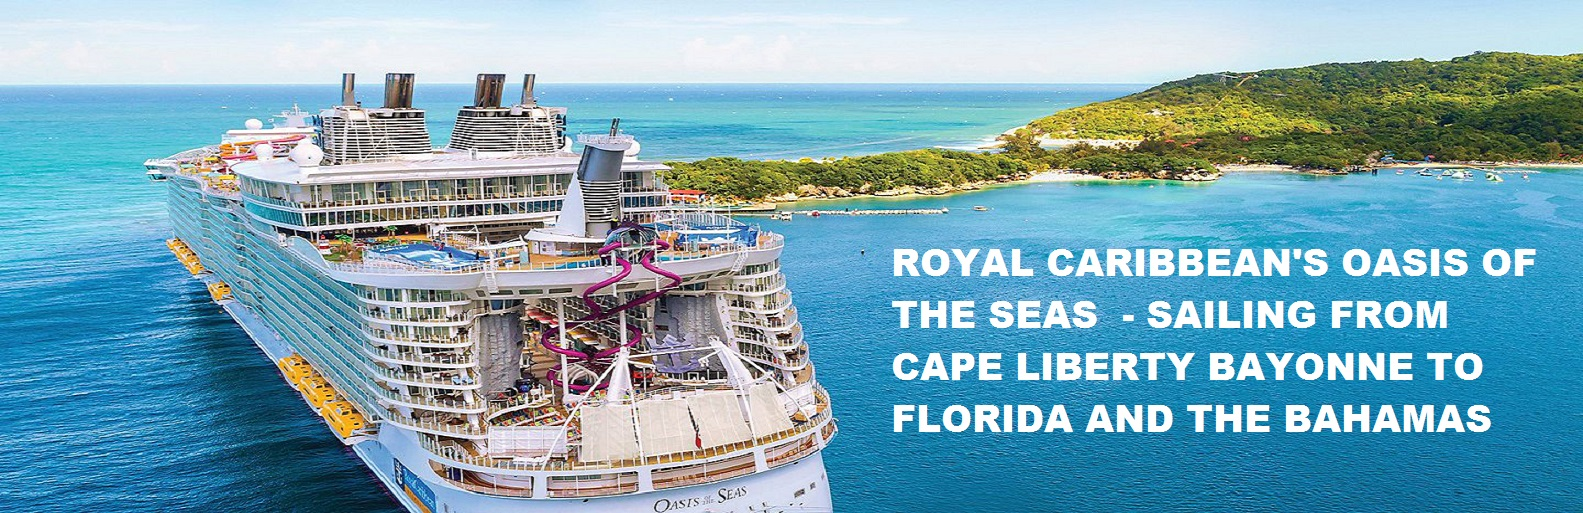 Royal Caribbean's Oasis of the Seas to Sail from Cape Liberty Bayonne, NJ to Florida, Bahamas and Coco Cay Private Island in 2021.